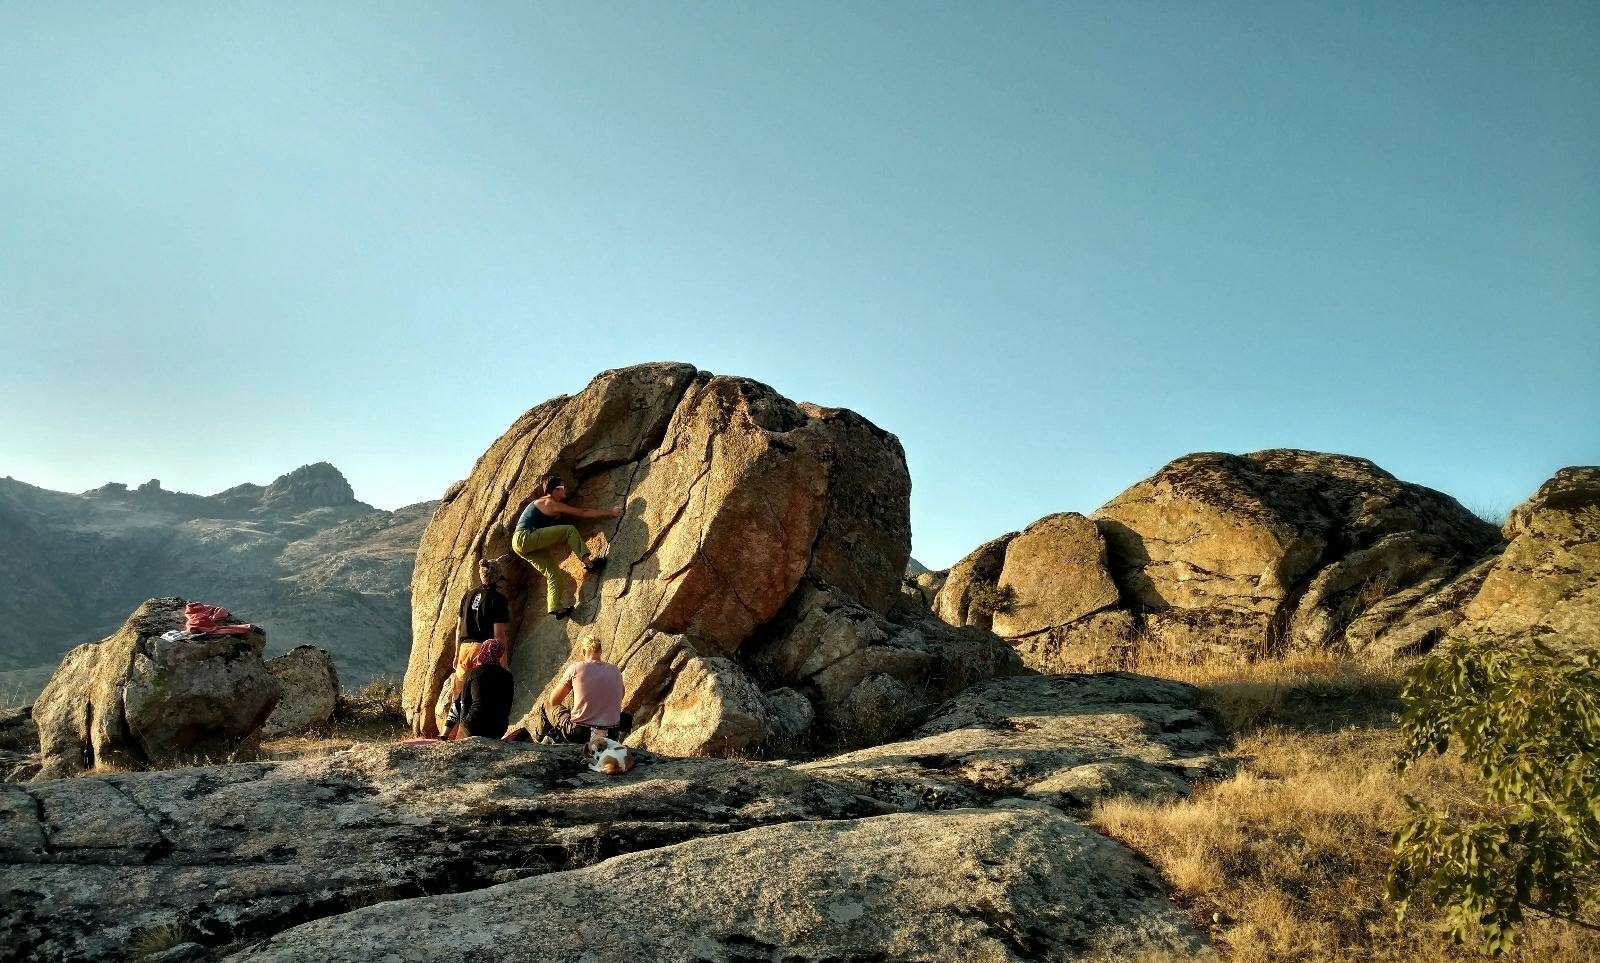 First boulder in Prilep